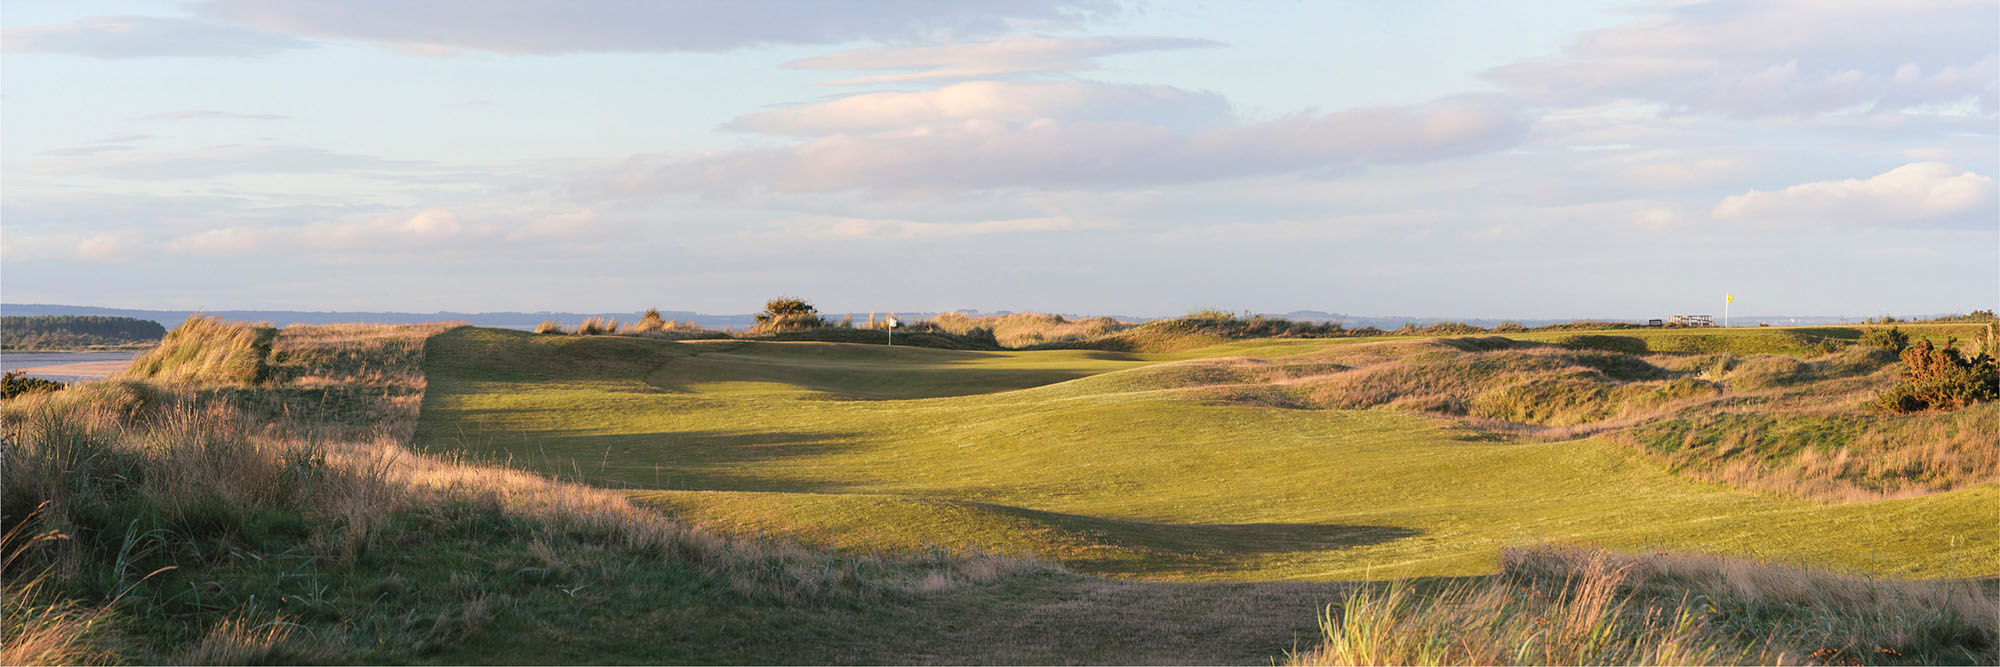 Golf Course Image - St Andrews New Course No. 9